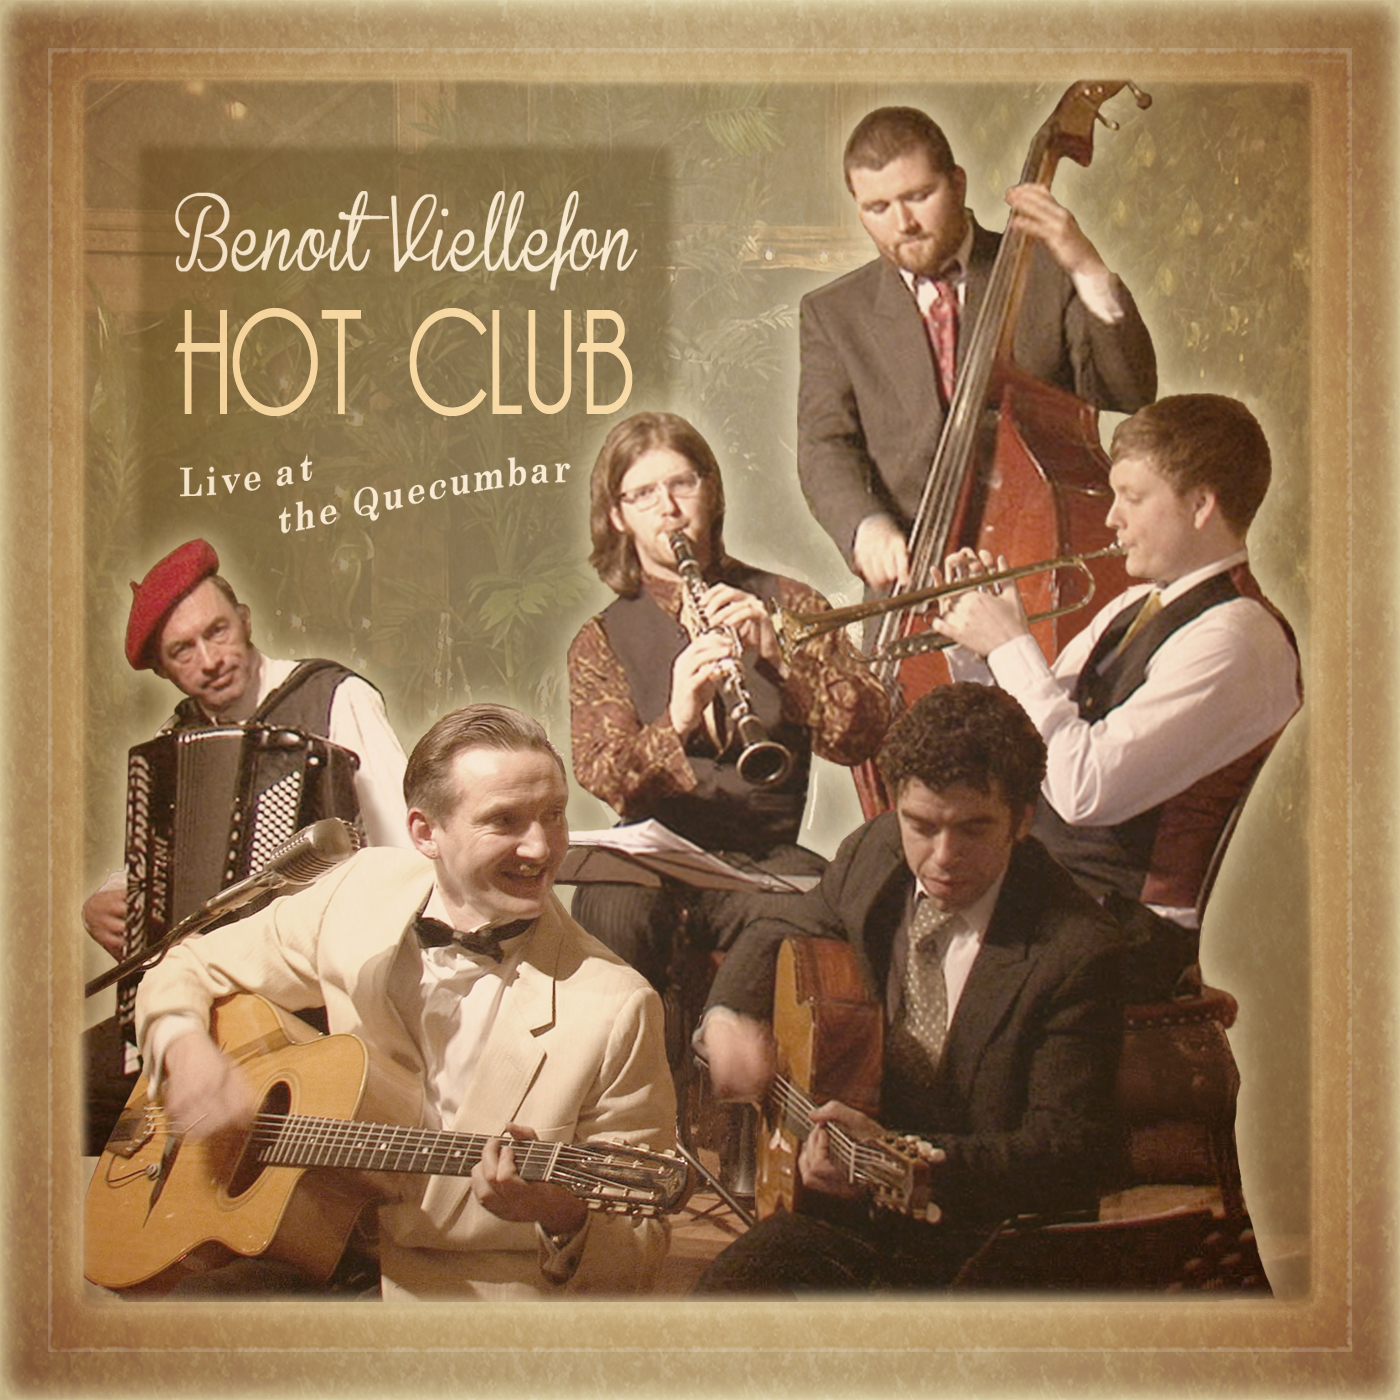 "The Hot Club - ""Live at the Quecumbar"" (Album Download) - Benoit Viellefon"